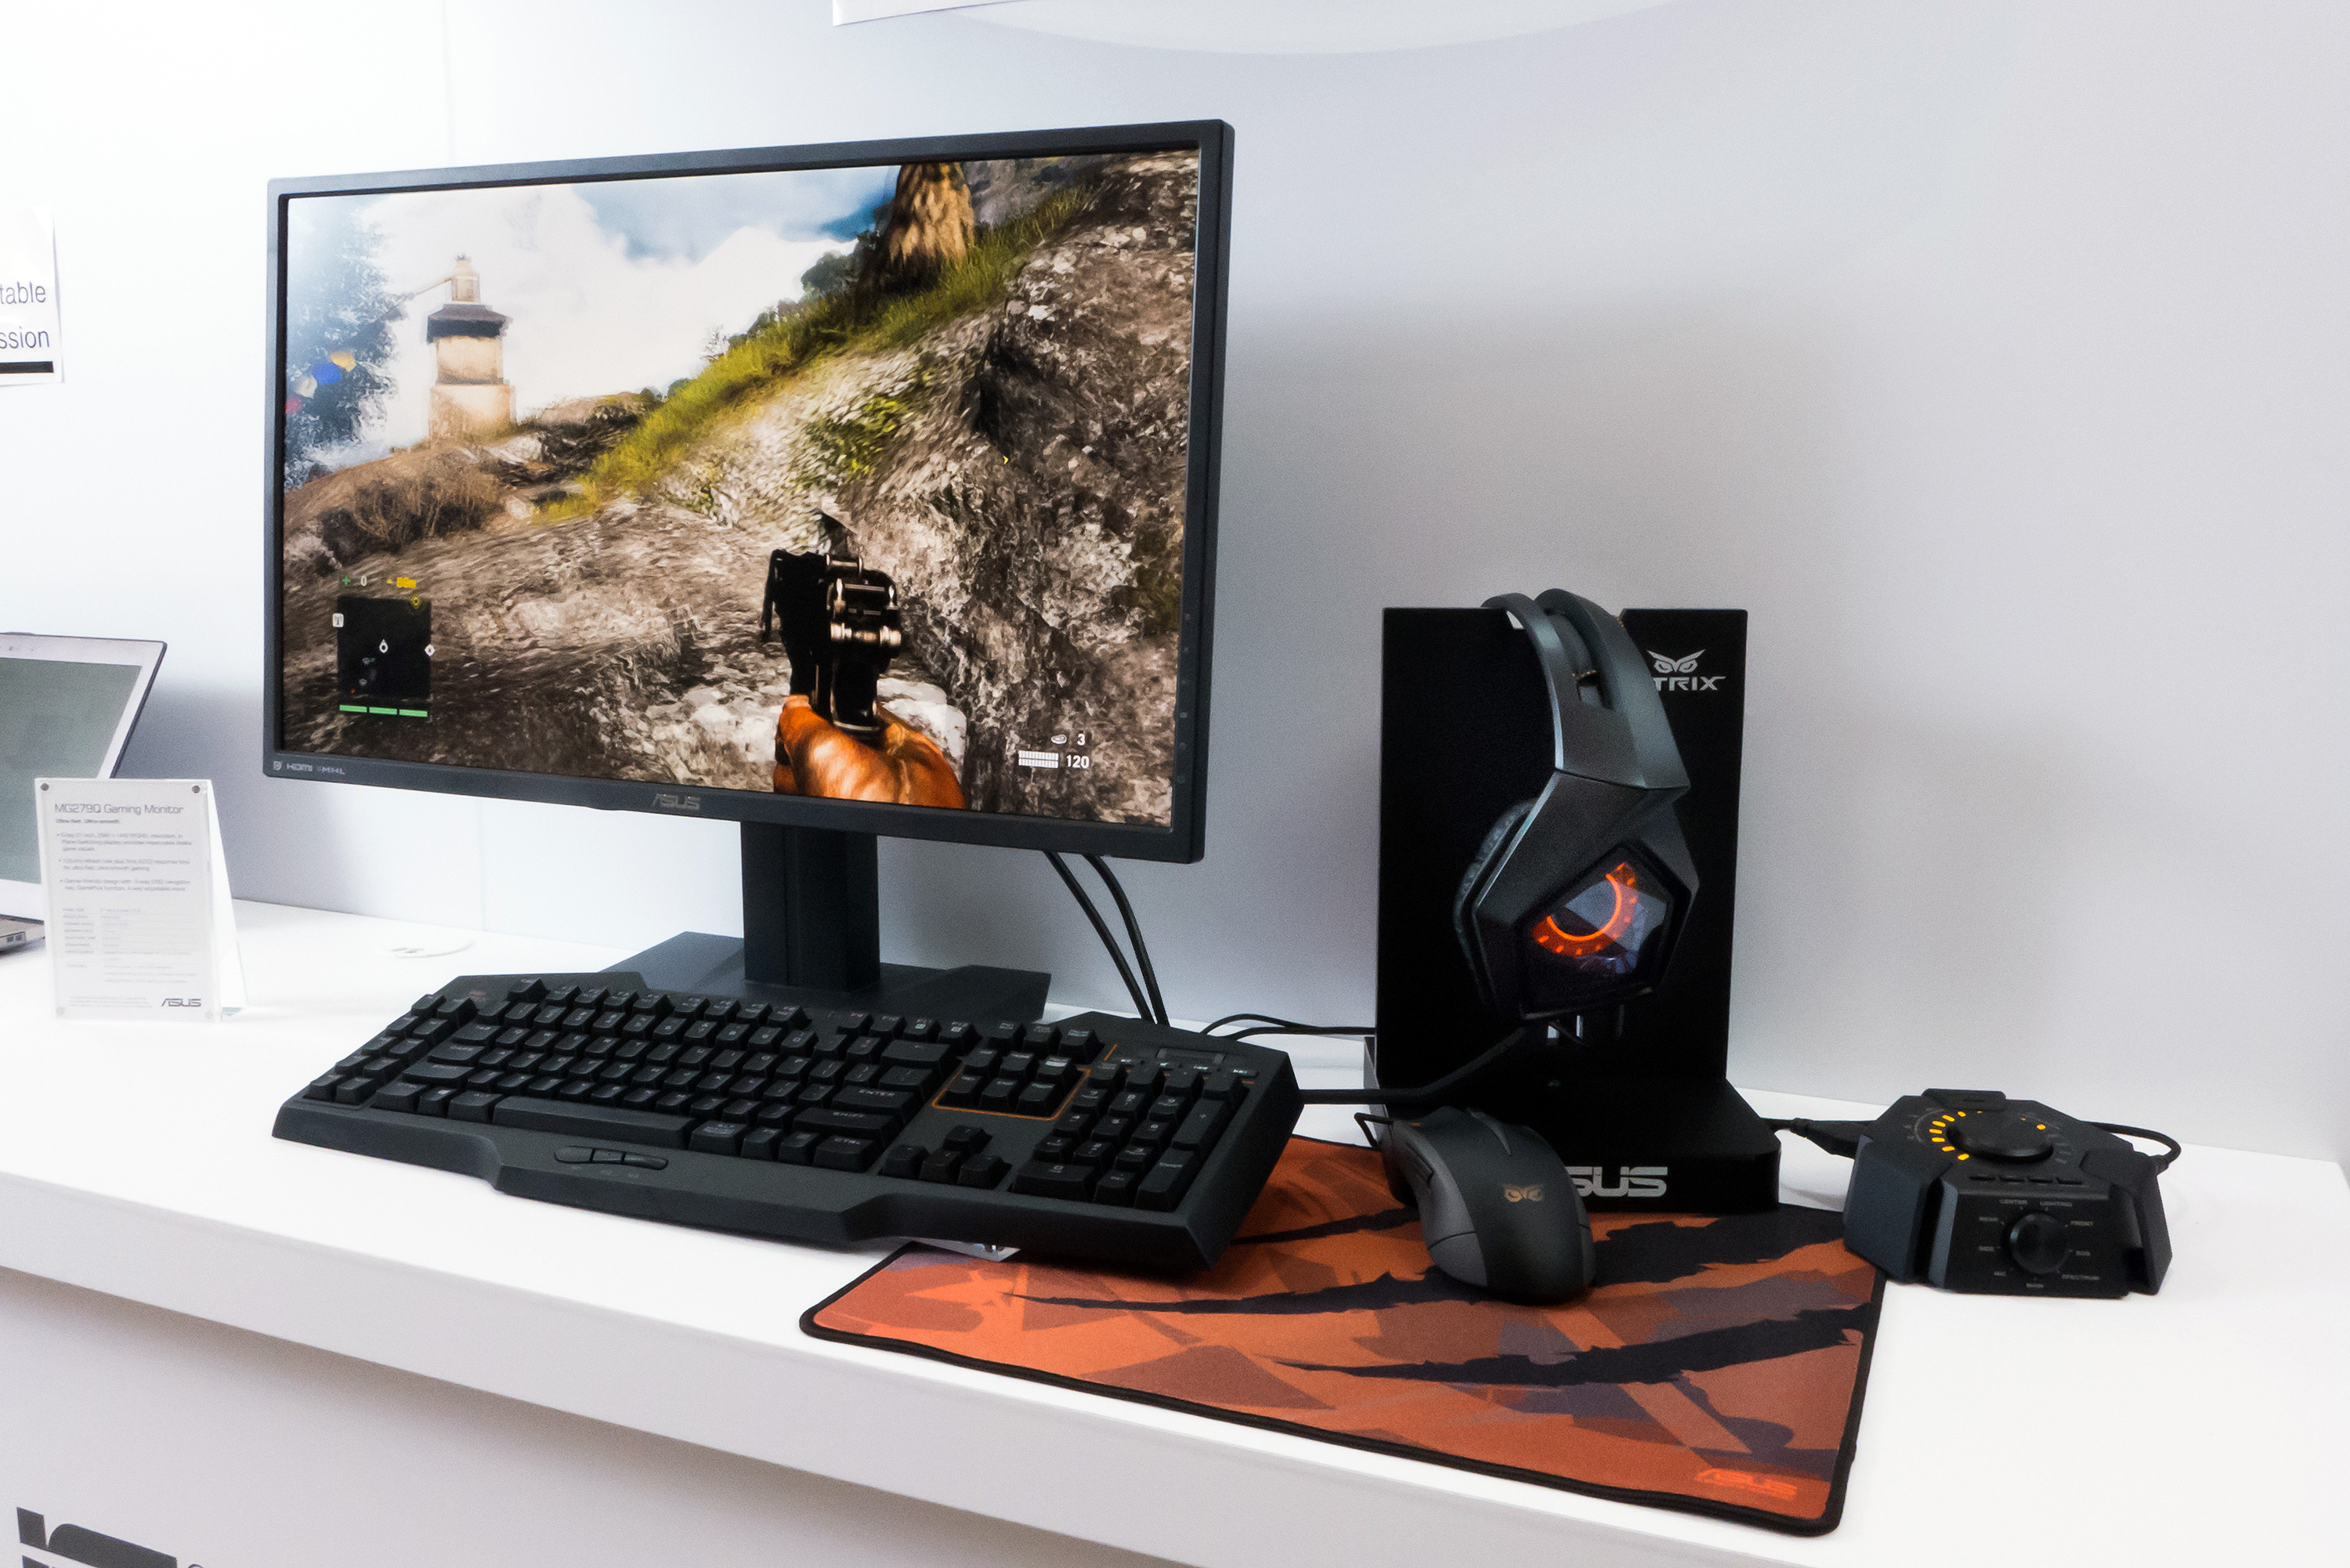 ASUS_MG278Q_WQHD_In-Plane-Switching_technology_gaming_monitor_with_Strix_gaming_set